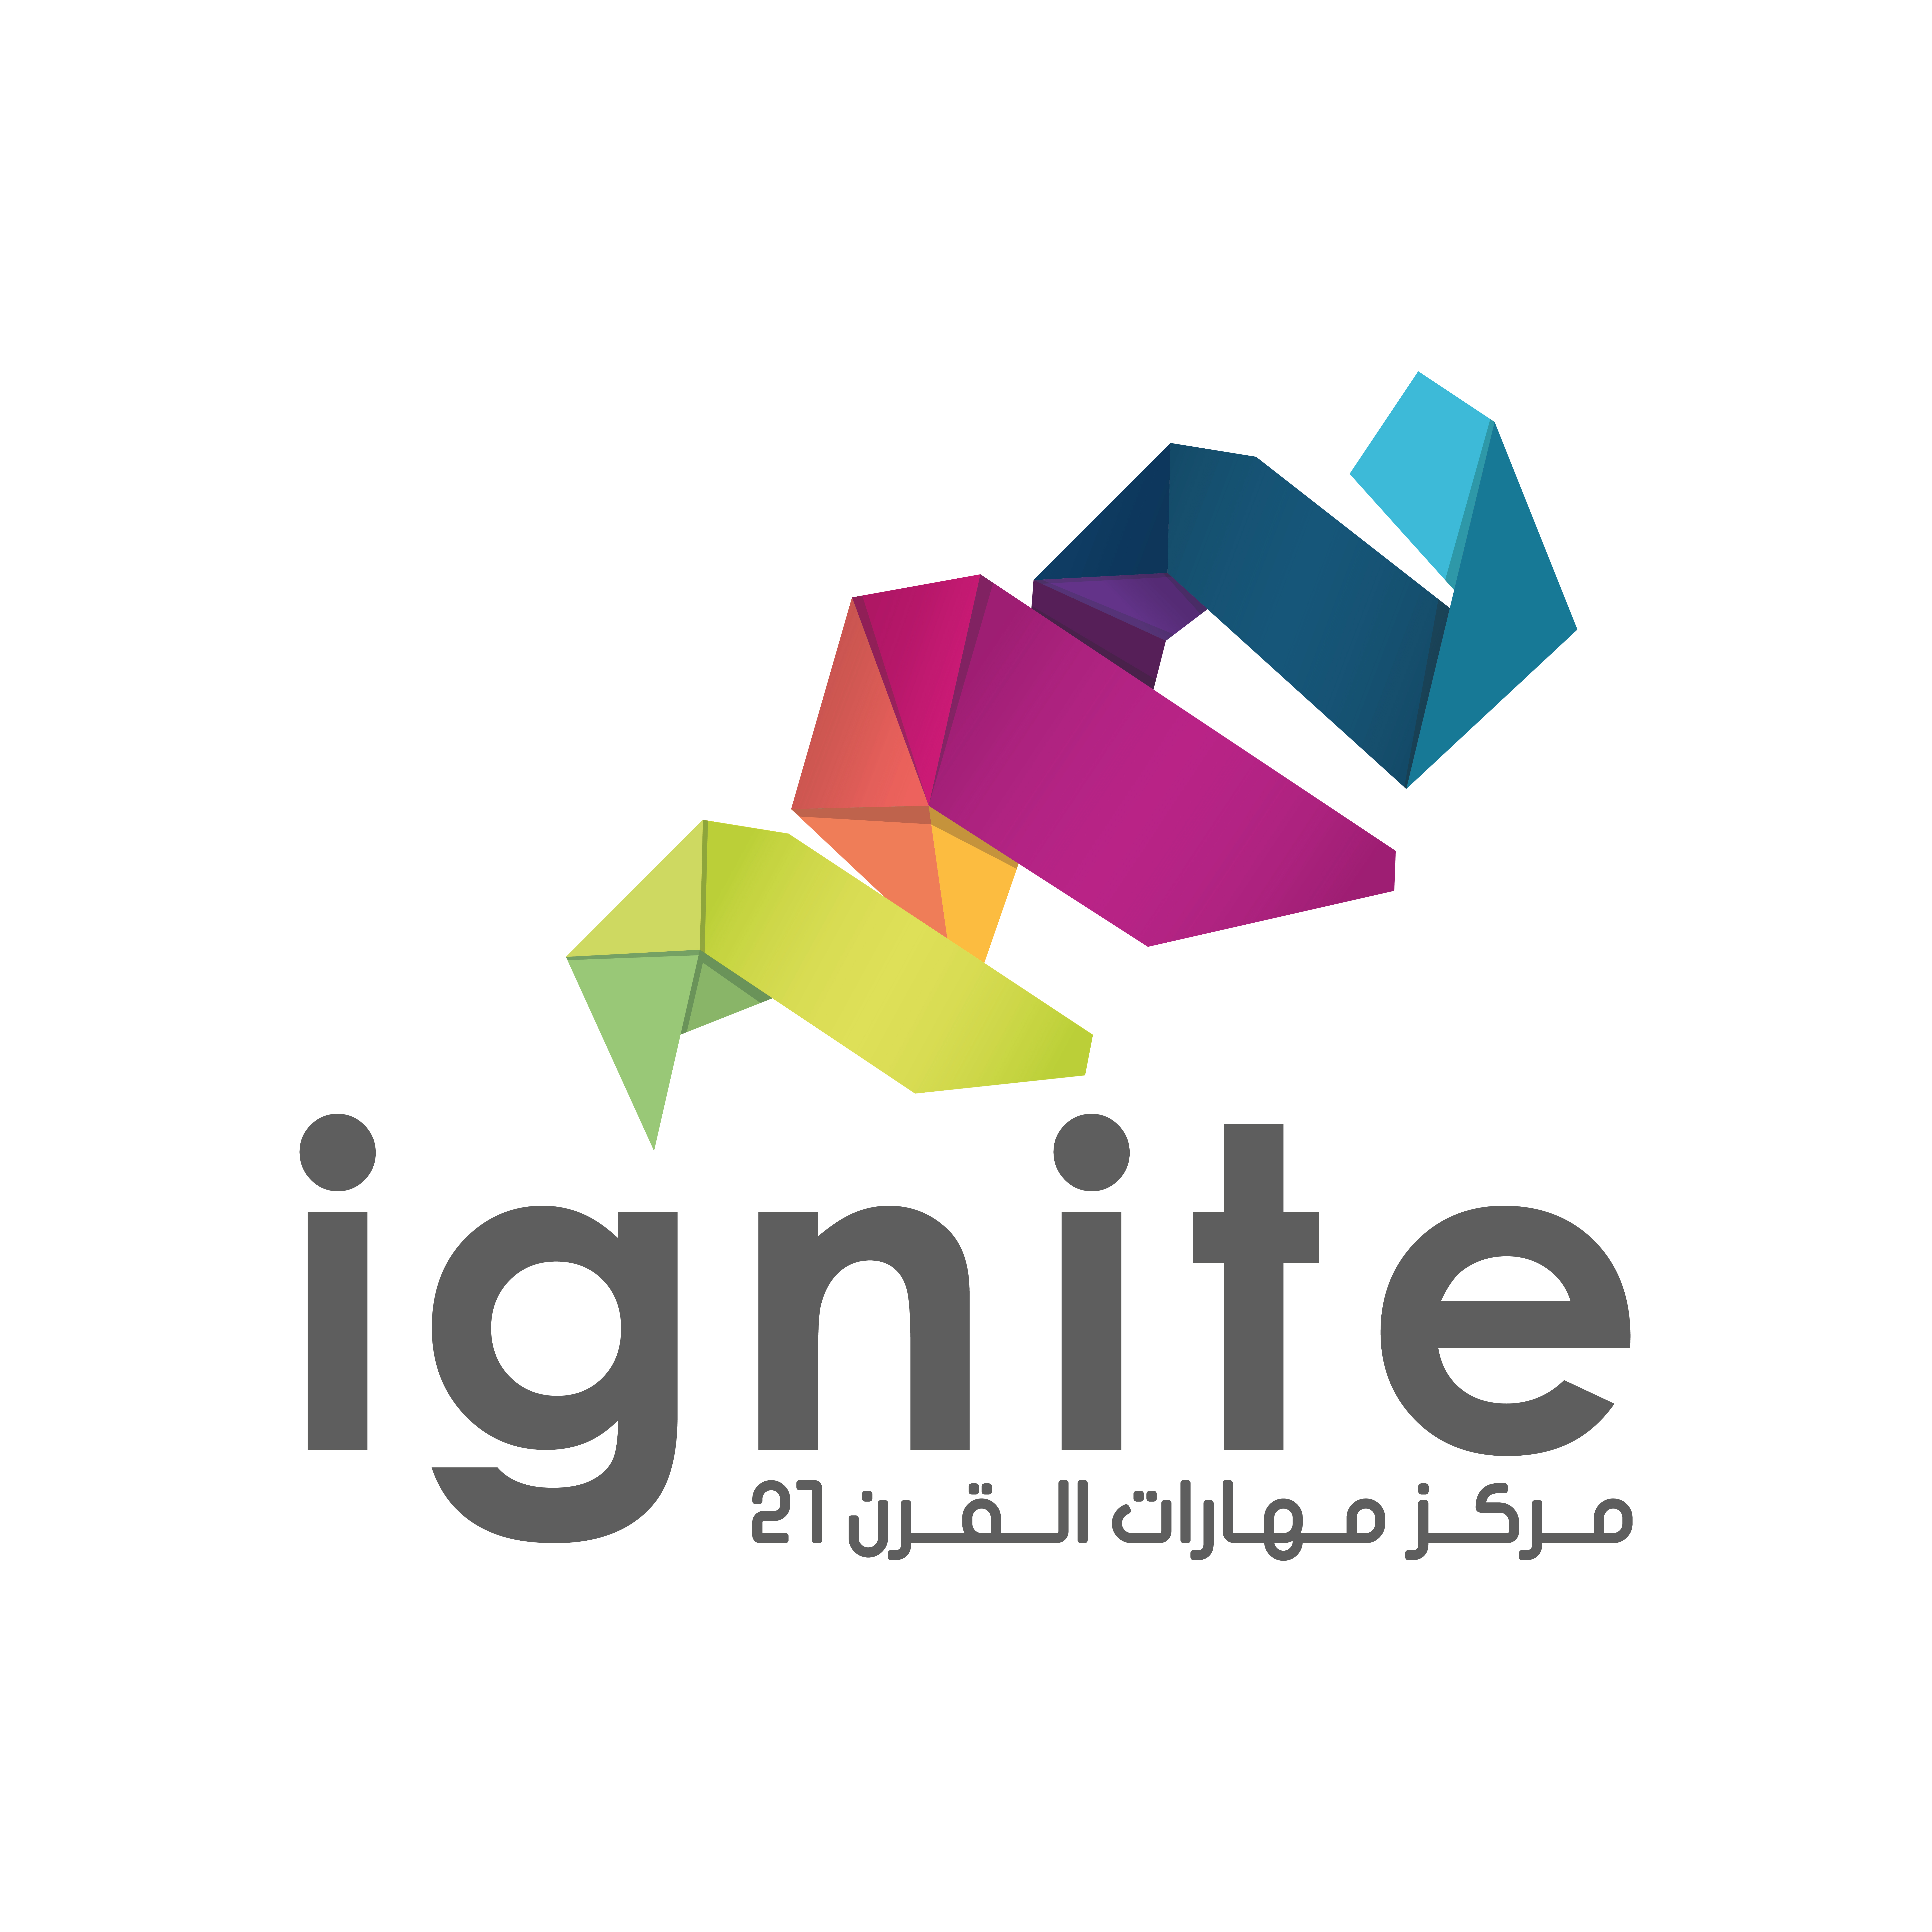 doroob six seconds ignite utilizes a blend of specific skills content knowledge expertise and literacies innovative support systems to empower future generation to